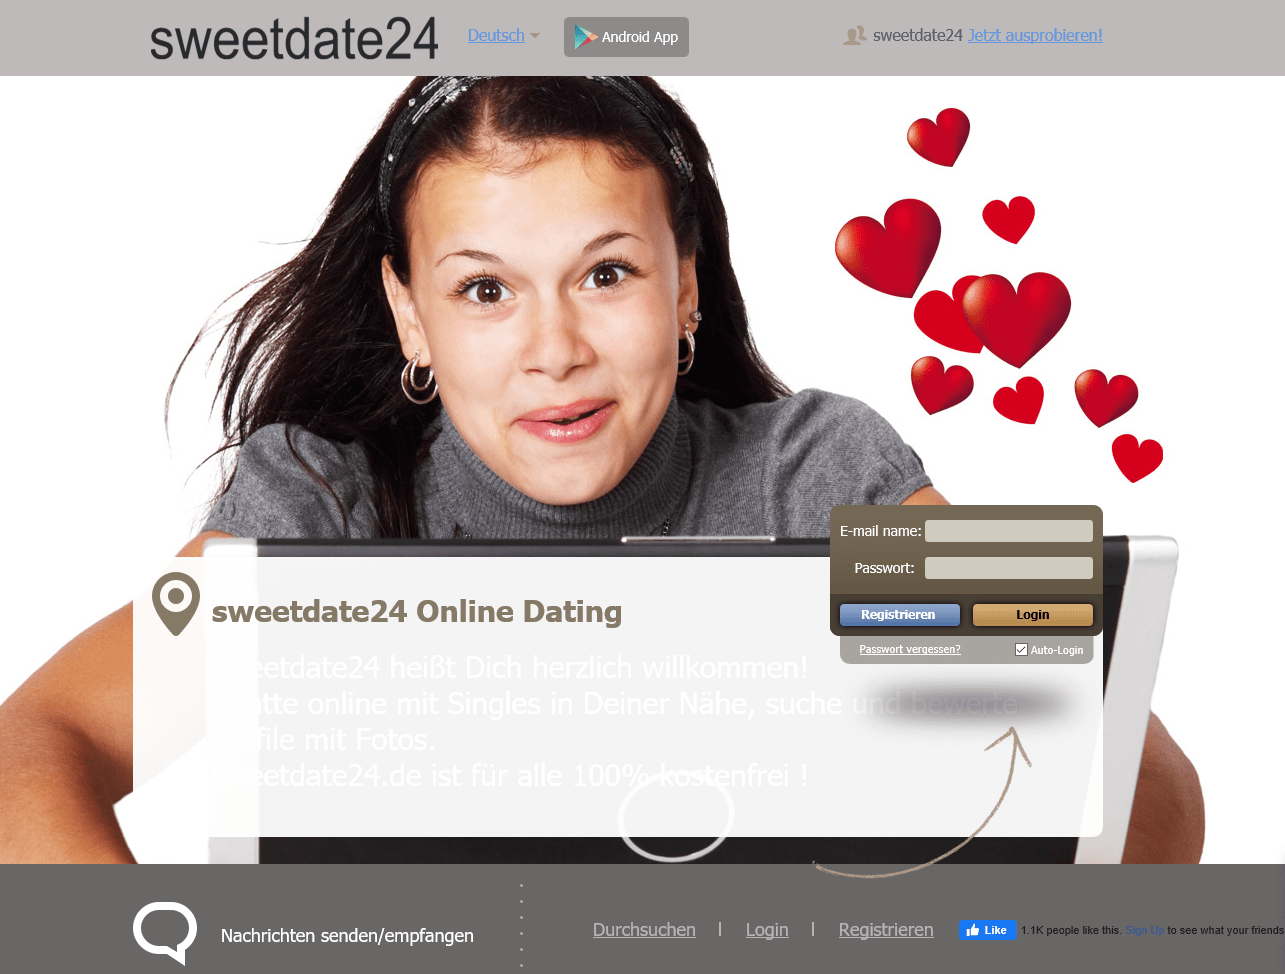 Sweetdate24 Online Dating